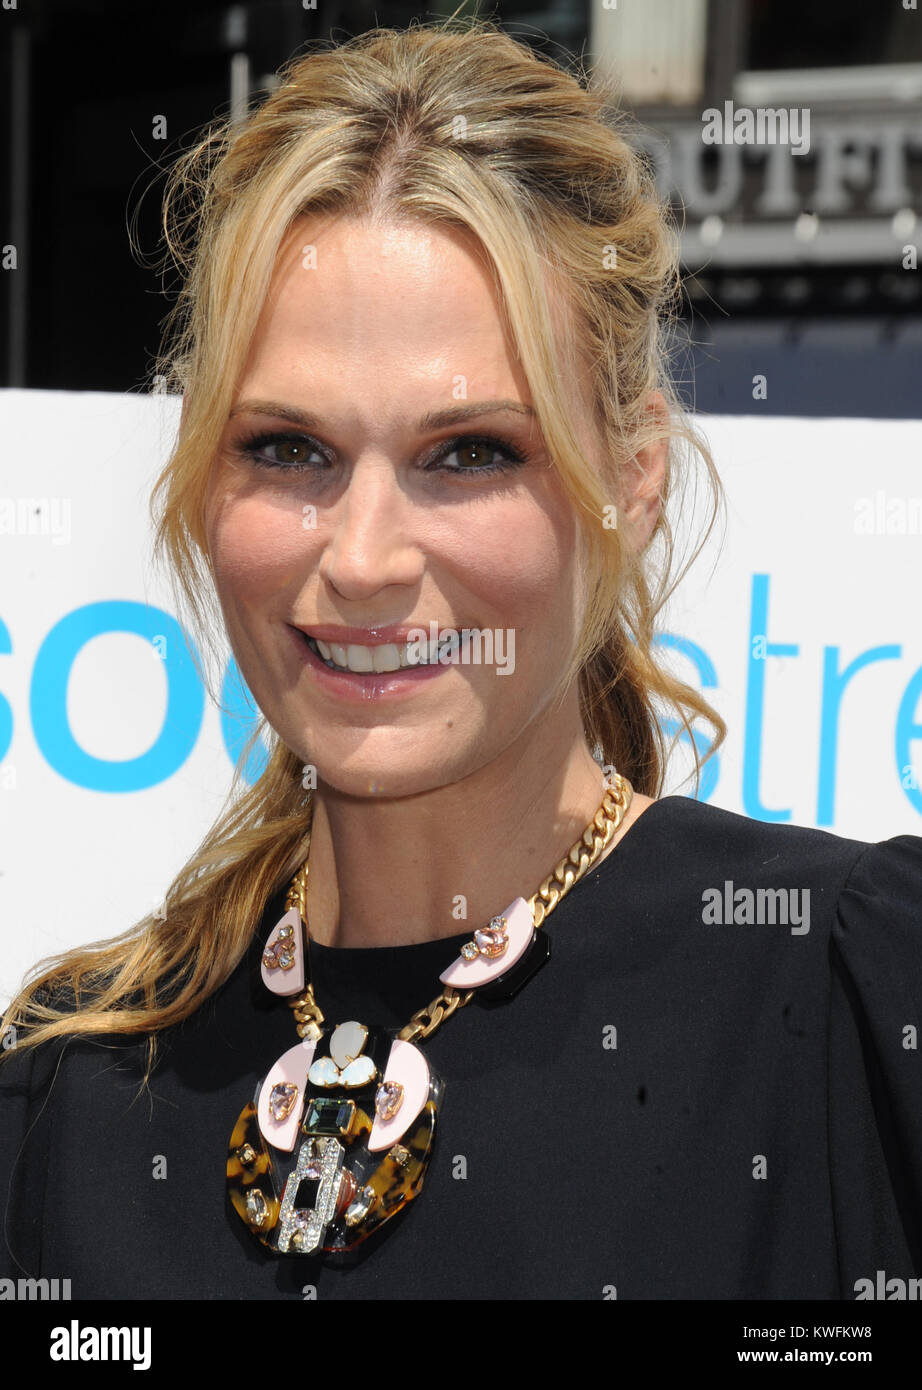 f202e737 NEW YORK, NY - AUGUST 27: Nicollette Sheridan Sodastream event on August 27,  2014 in New York City. People: Nicollette Sheridan